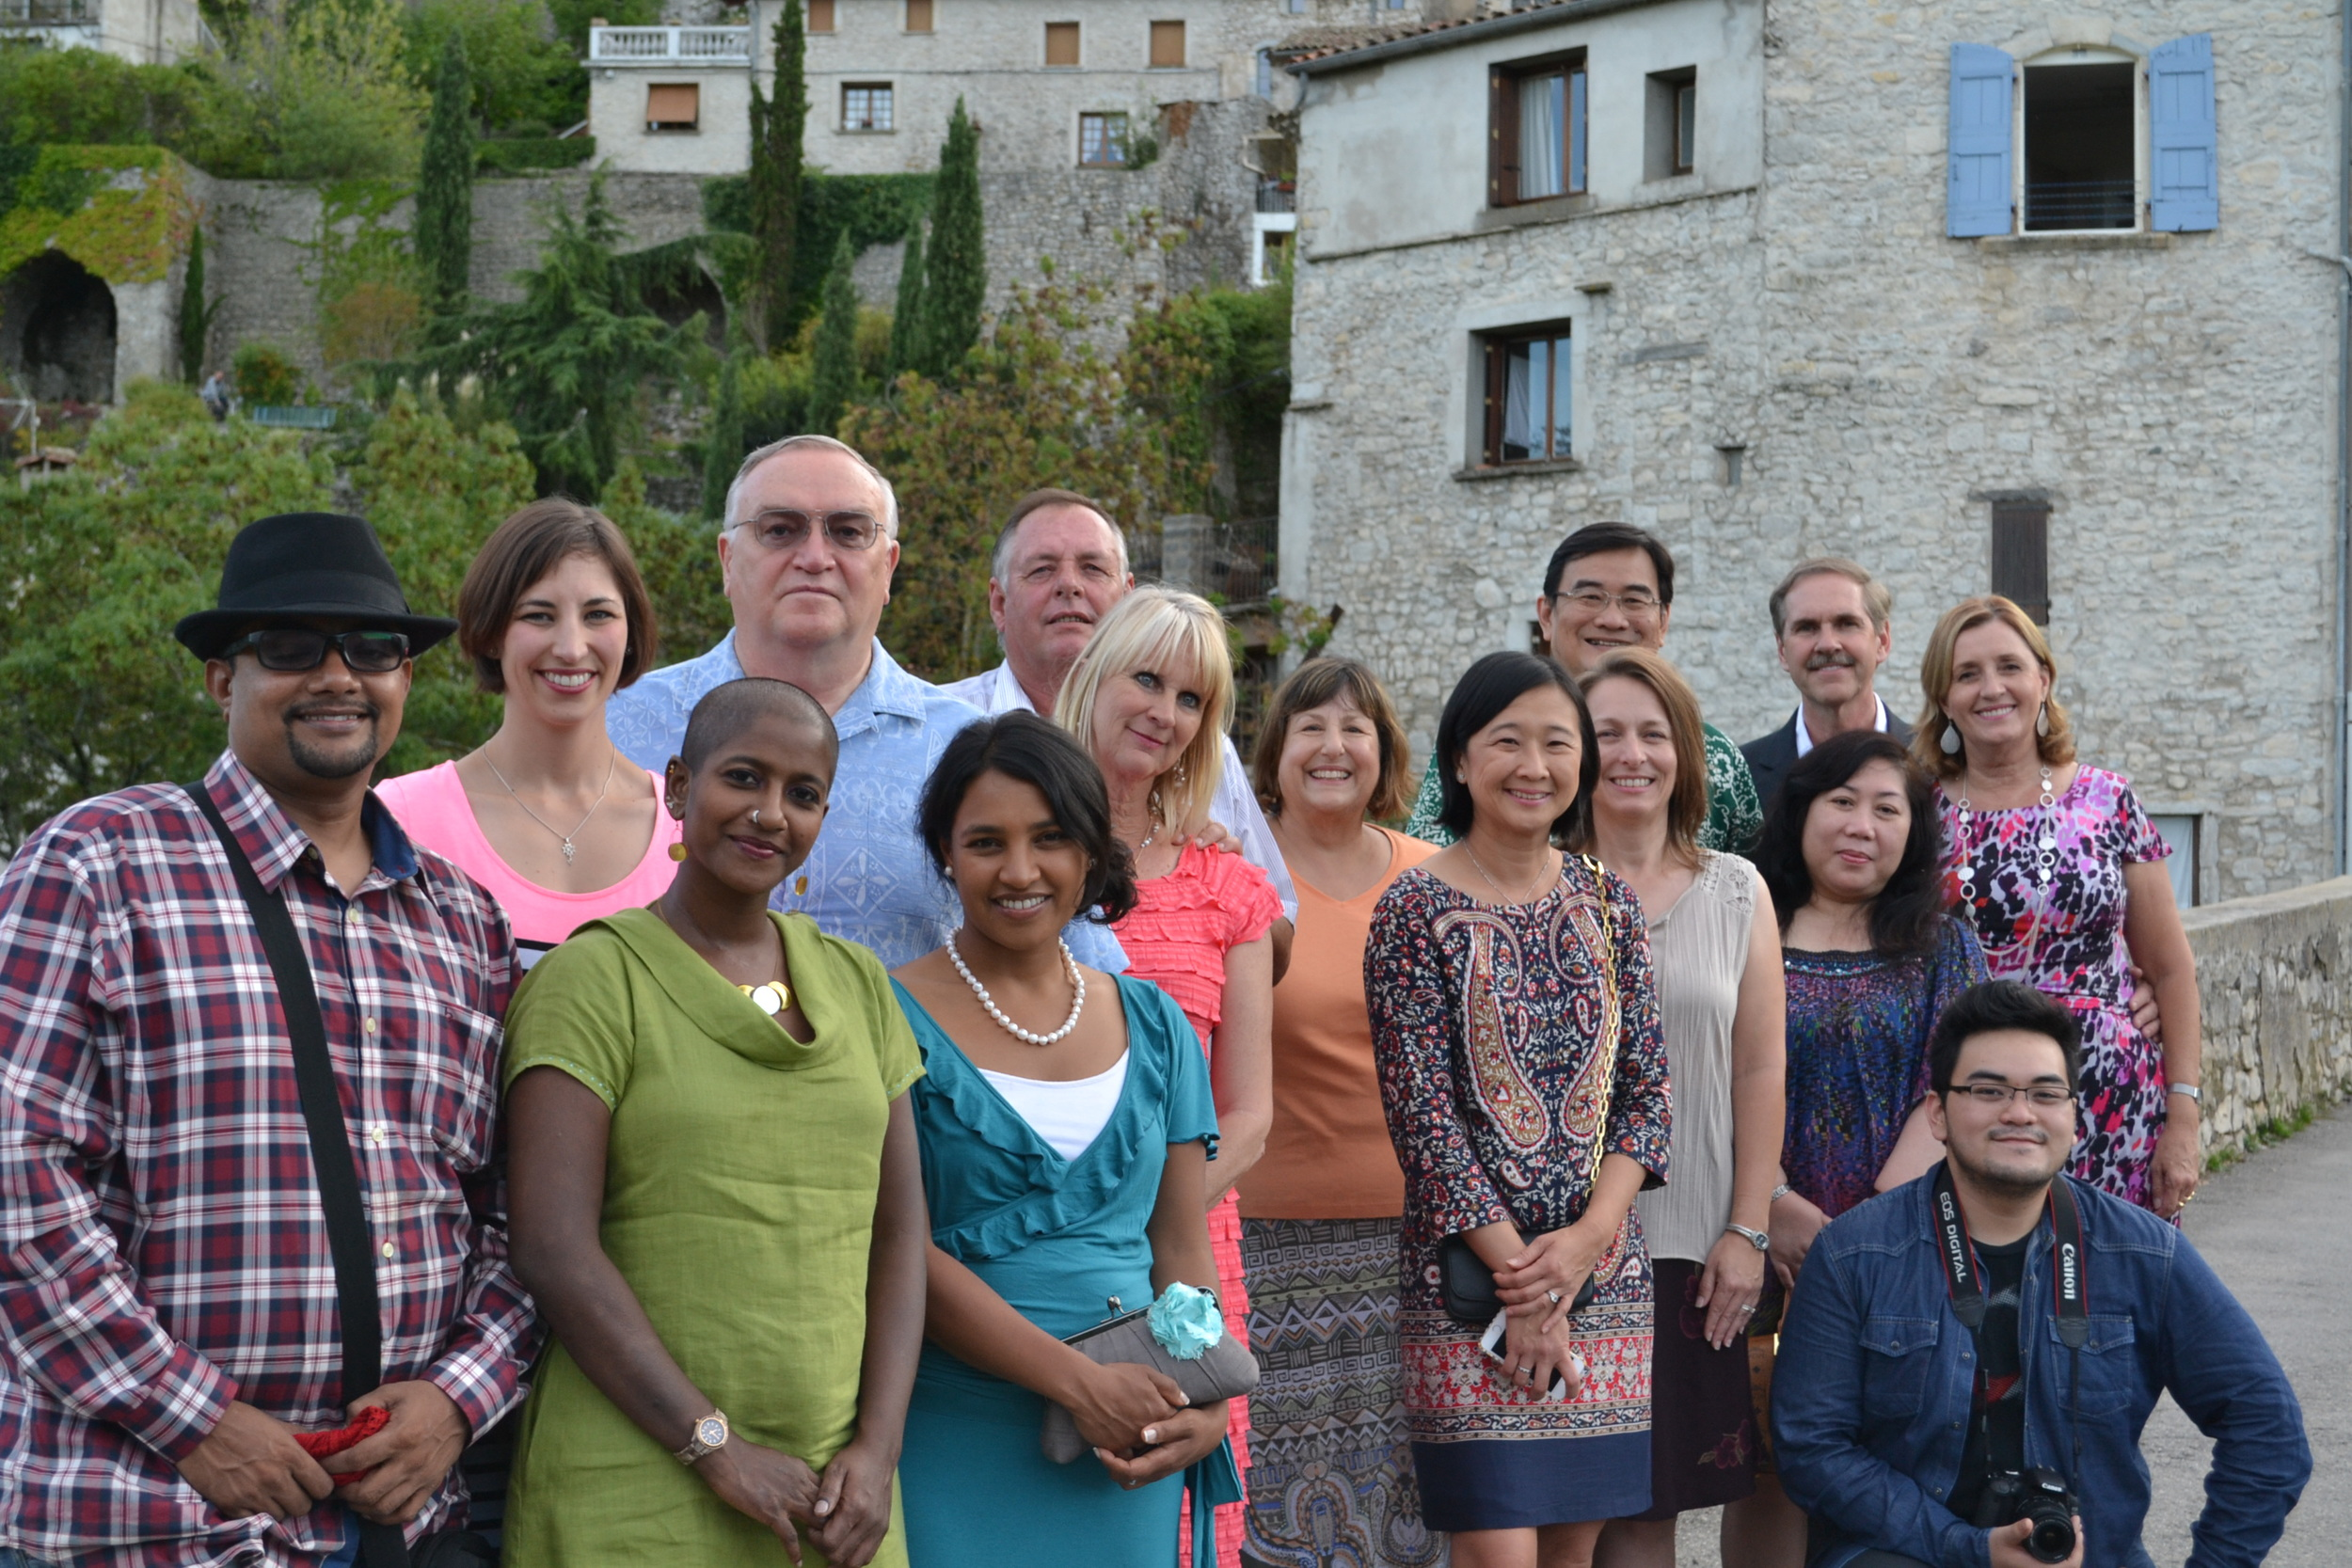 Heartistry Experience Attendees in Sauve